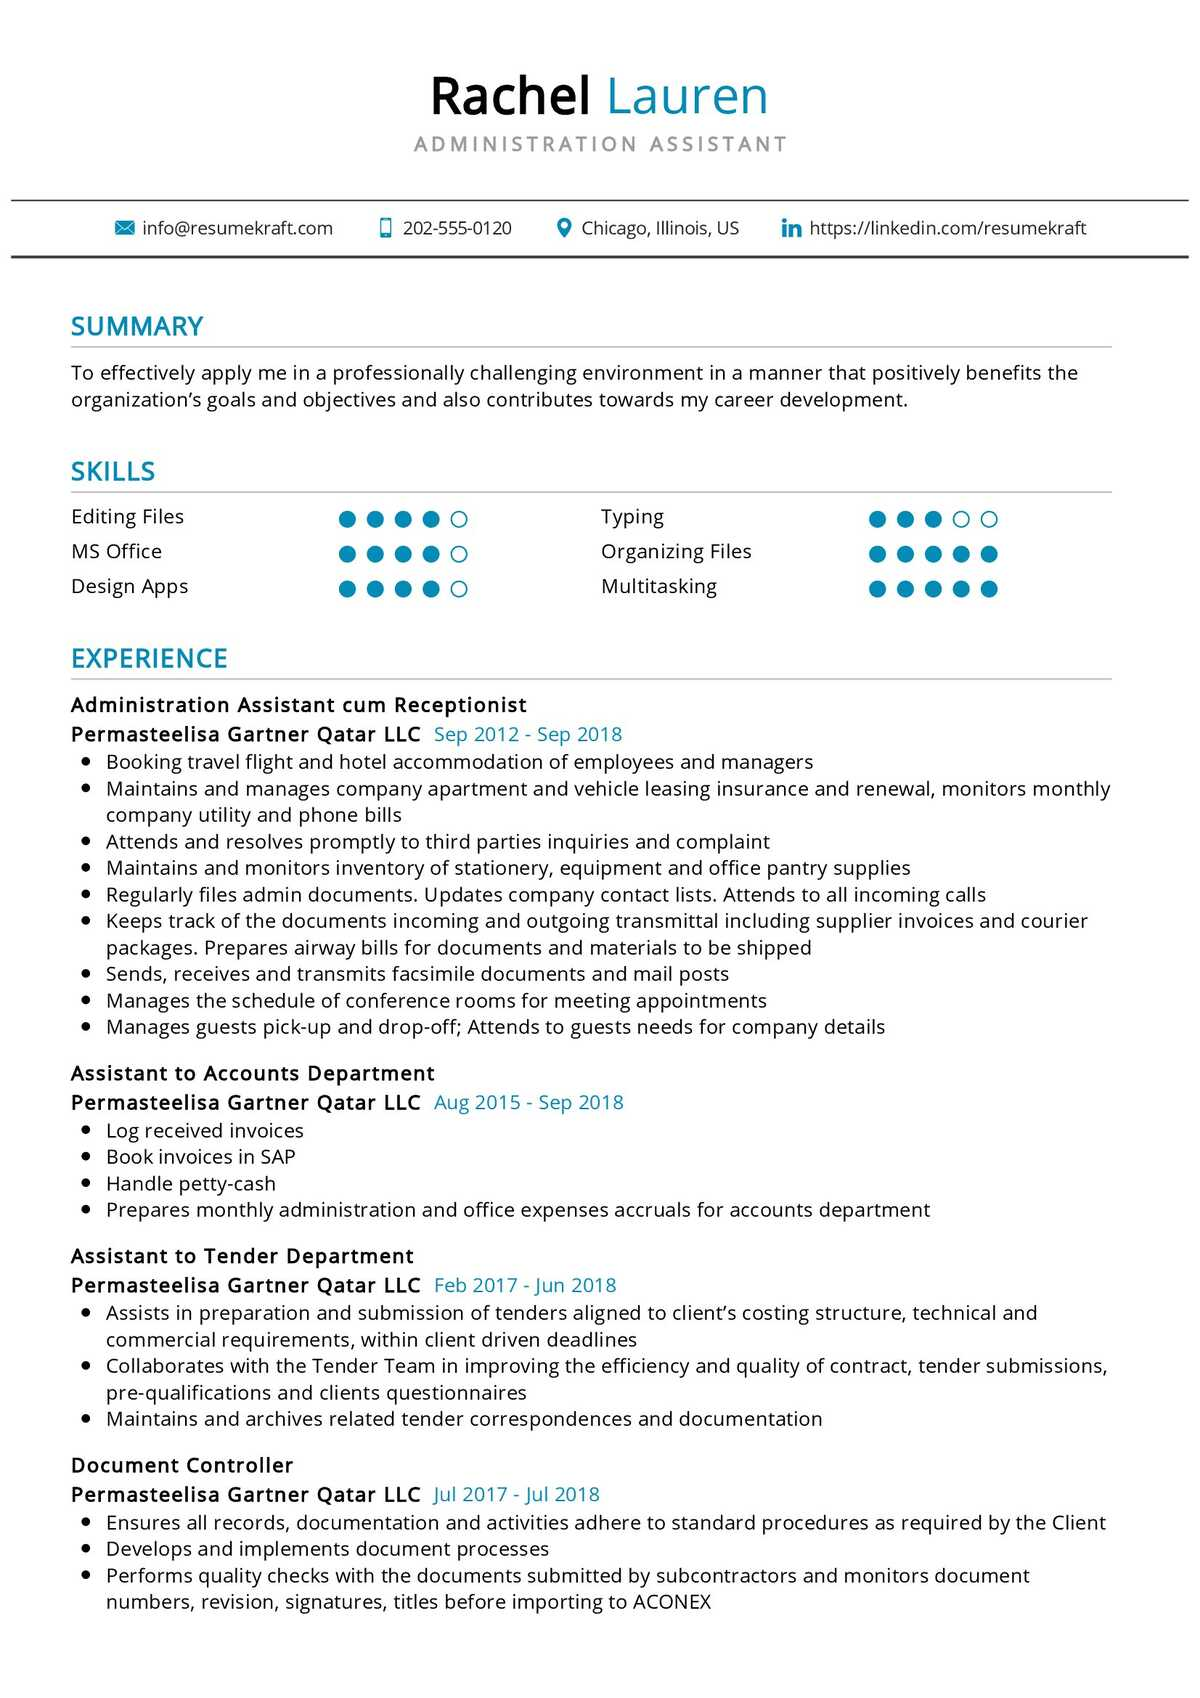 Administration Assistant Resume